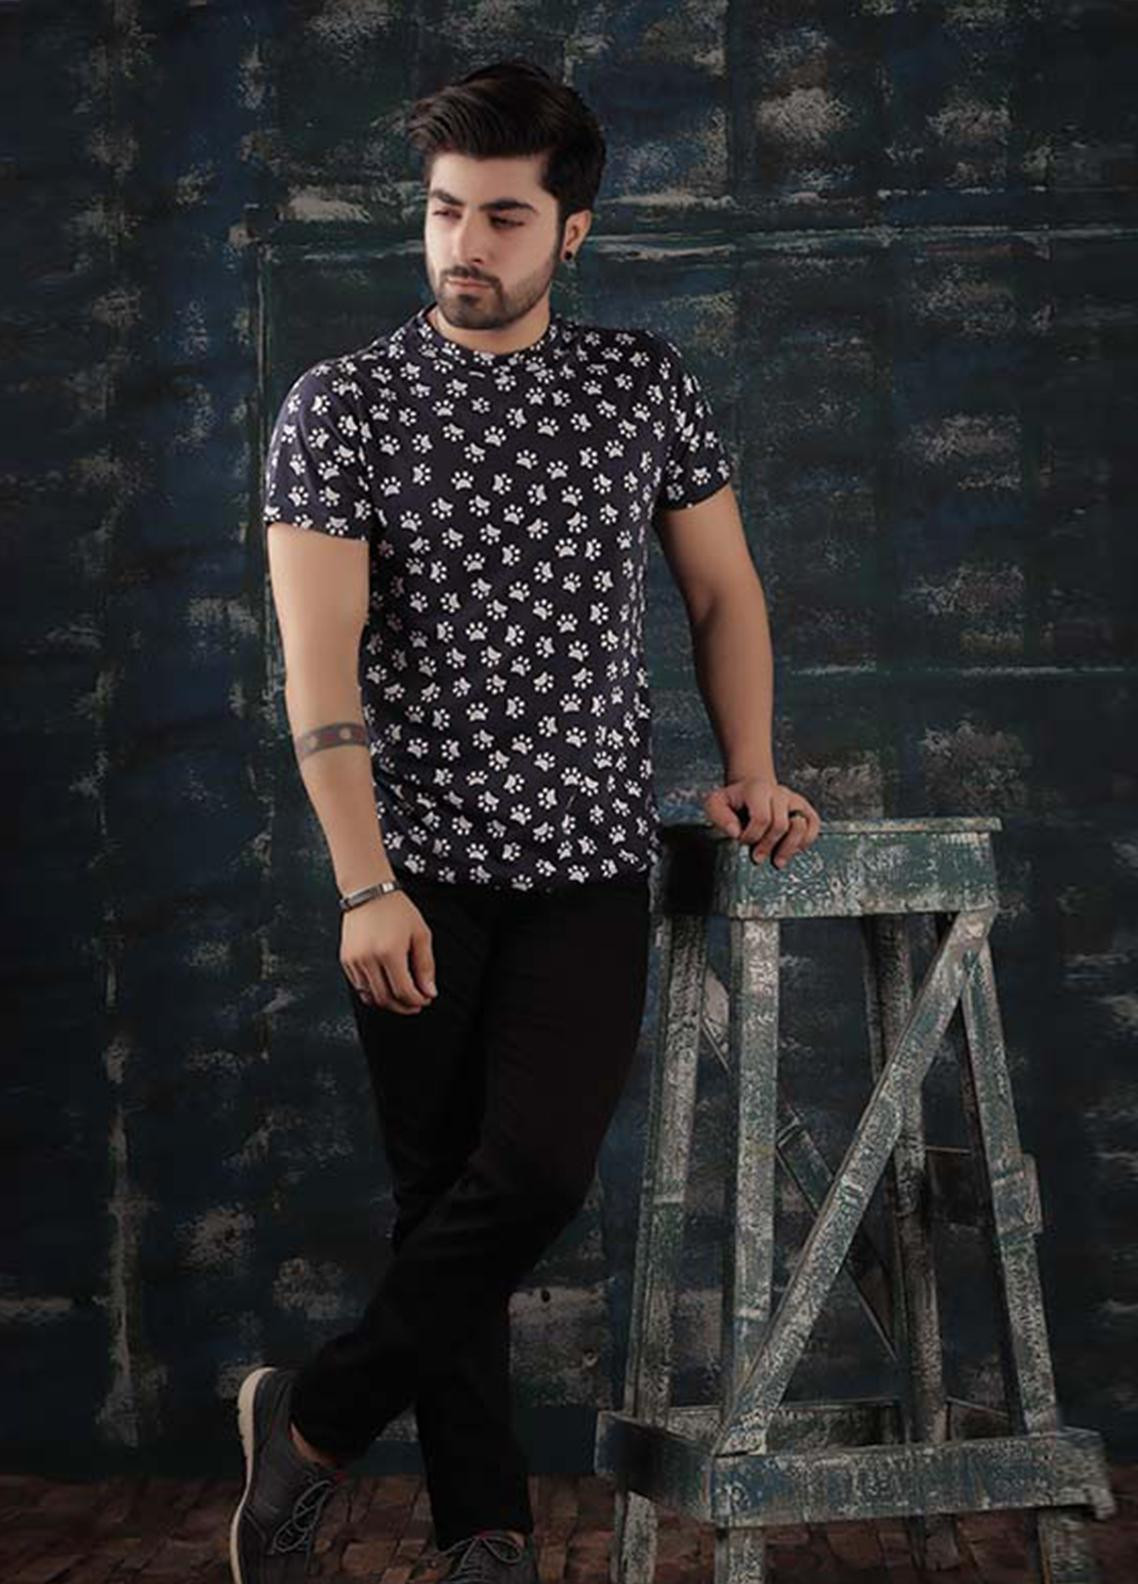 Red Tree Cotton Round Neck T-Shirts for Men - Navy Blue RT1599